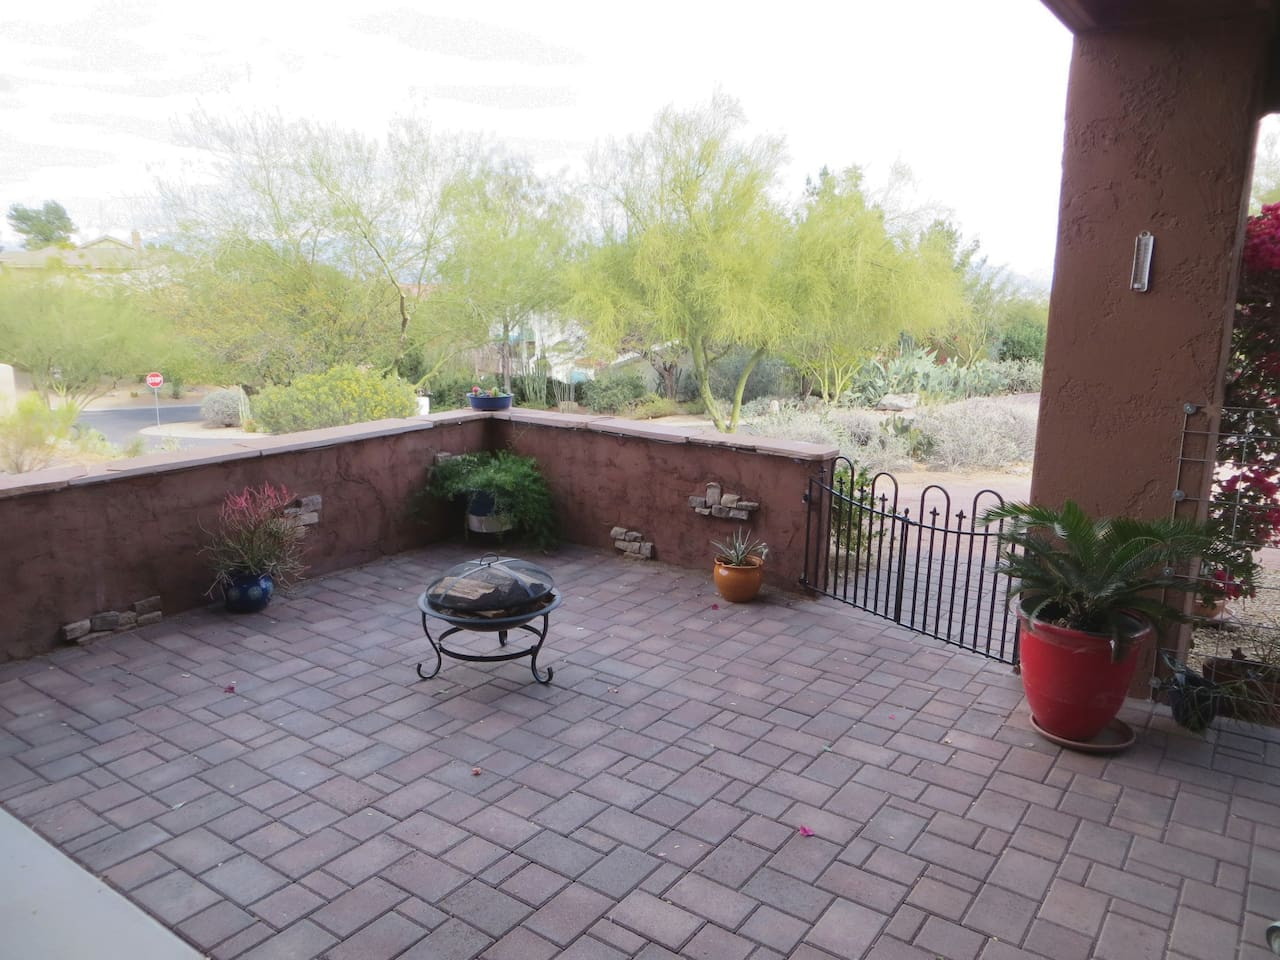 Intimate  paver Patio with lush desert fauna & mountain views.  On quiet residential street for taking in breathtaking  sunrises to the East.  Private off-street circle driveway parking beyond gate.